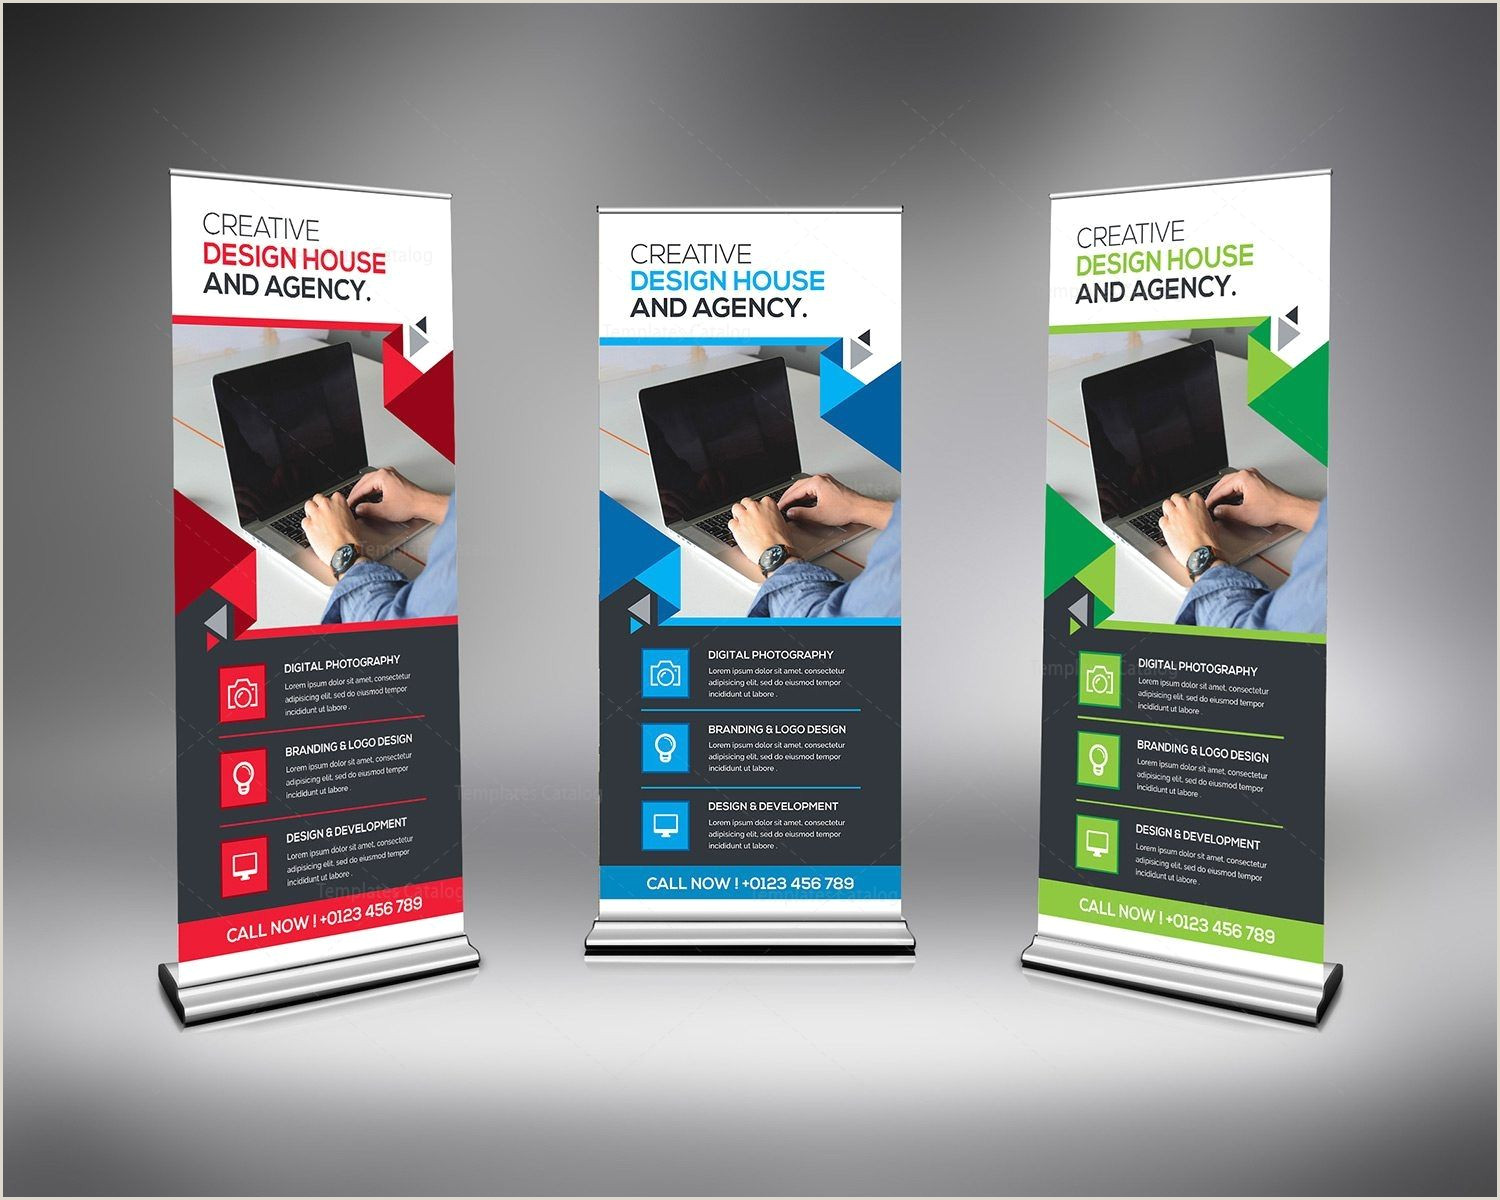 Retractable Banners And Stands Rollup Banner Templates Stylish Graphics